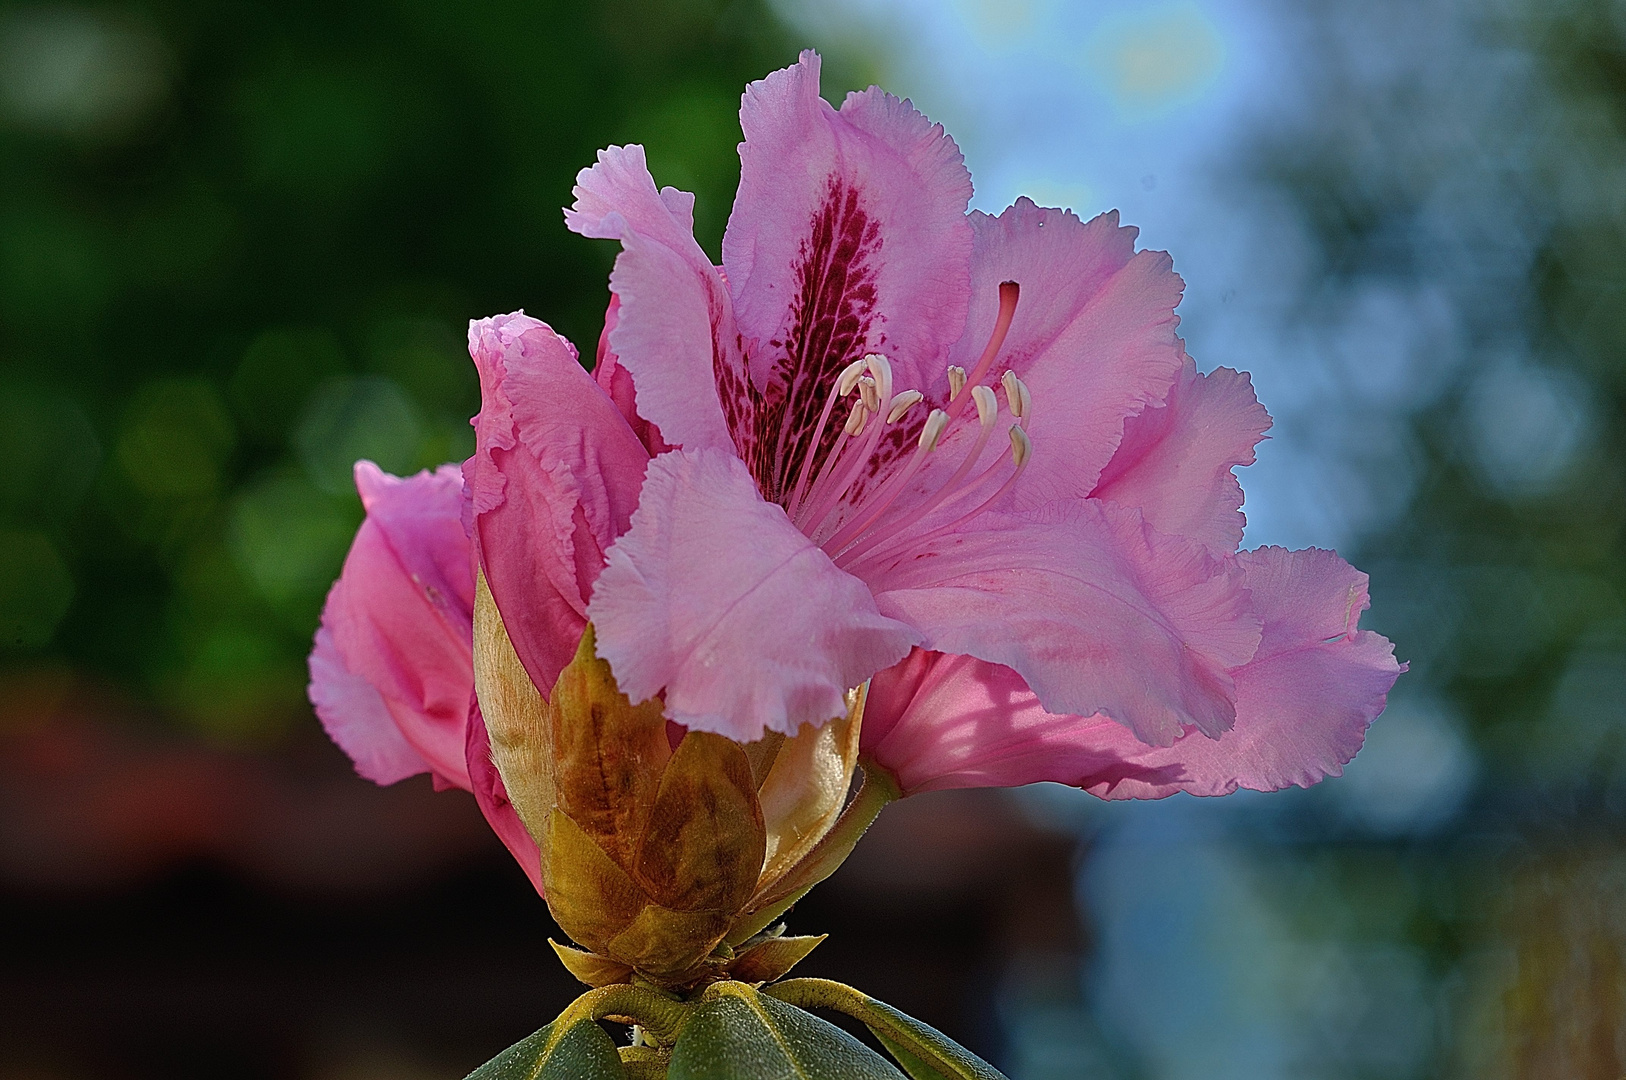 Rhododendron Blüte